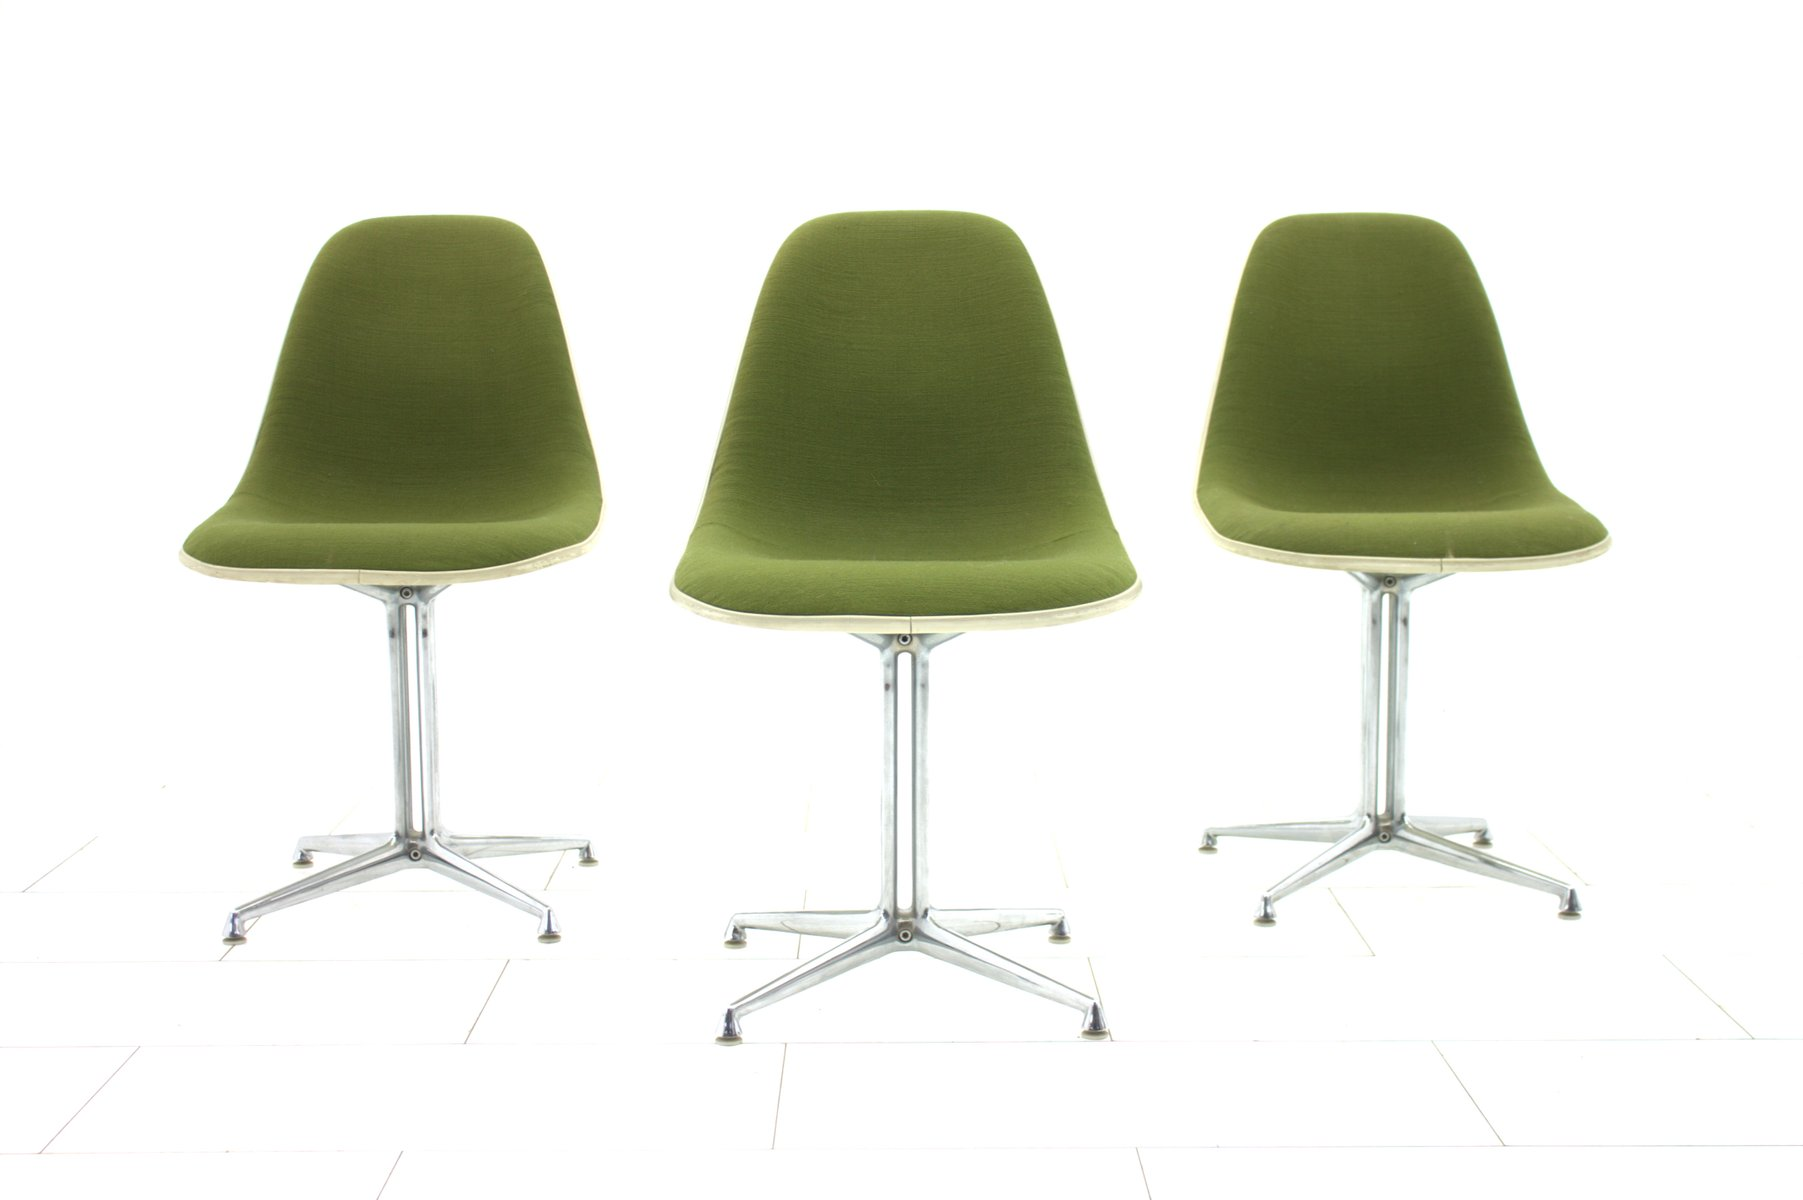 Green la fonda side chair by charles ray eames for vitra for Eames chair nachbau deutschland